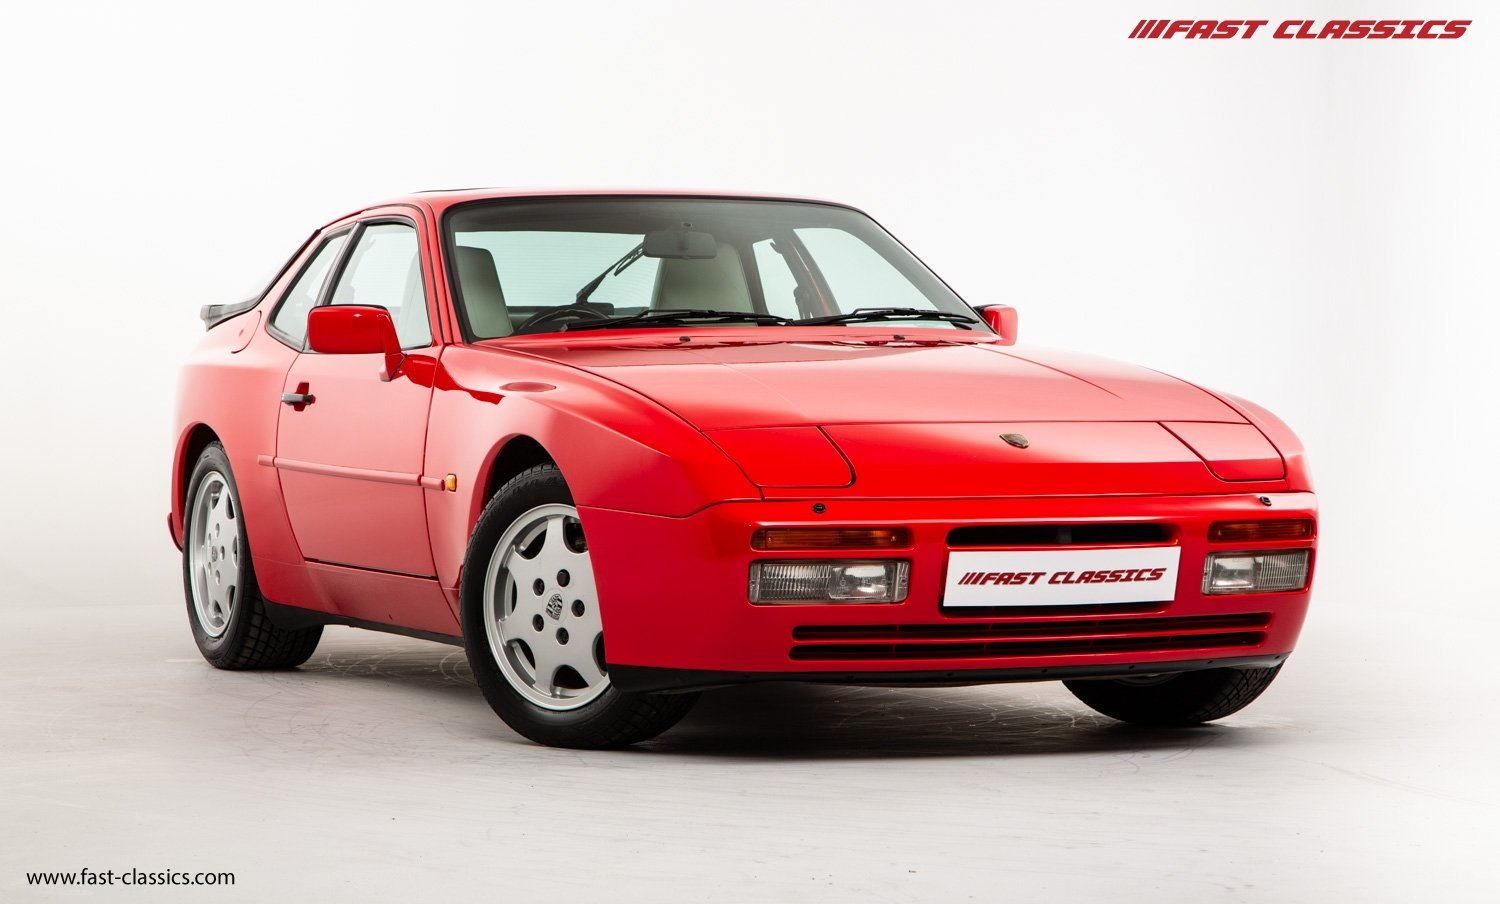 1990 PORSCHE 944 S2 // STUNNING GUARDS RED // 27K MILES // FAMILY For Sale (picture 2 of 23)